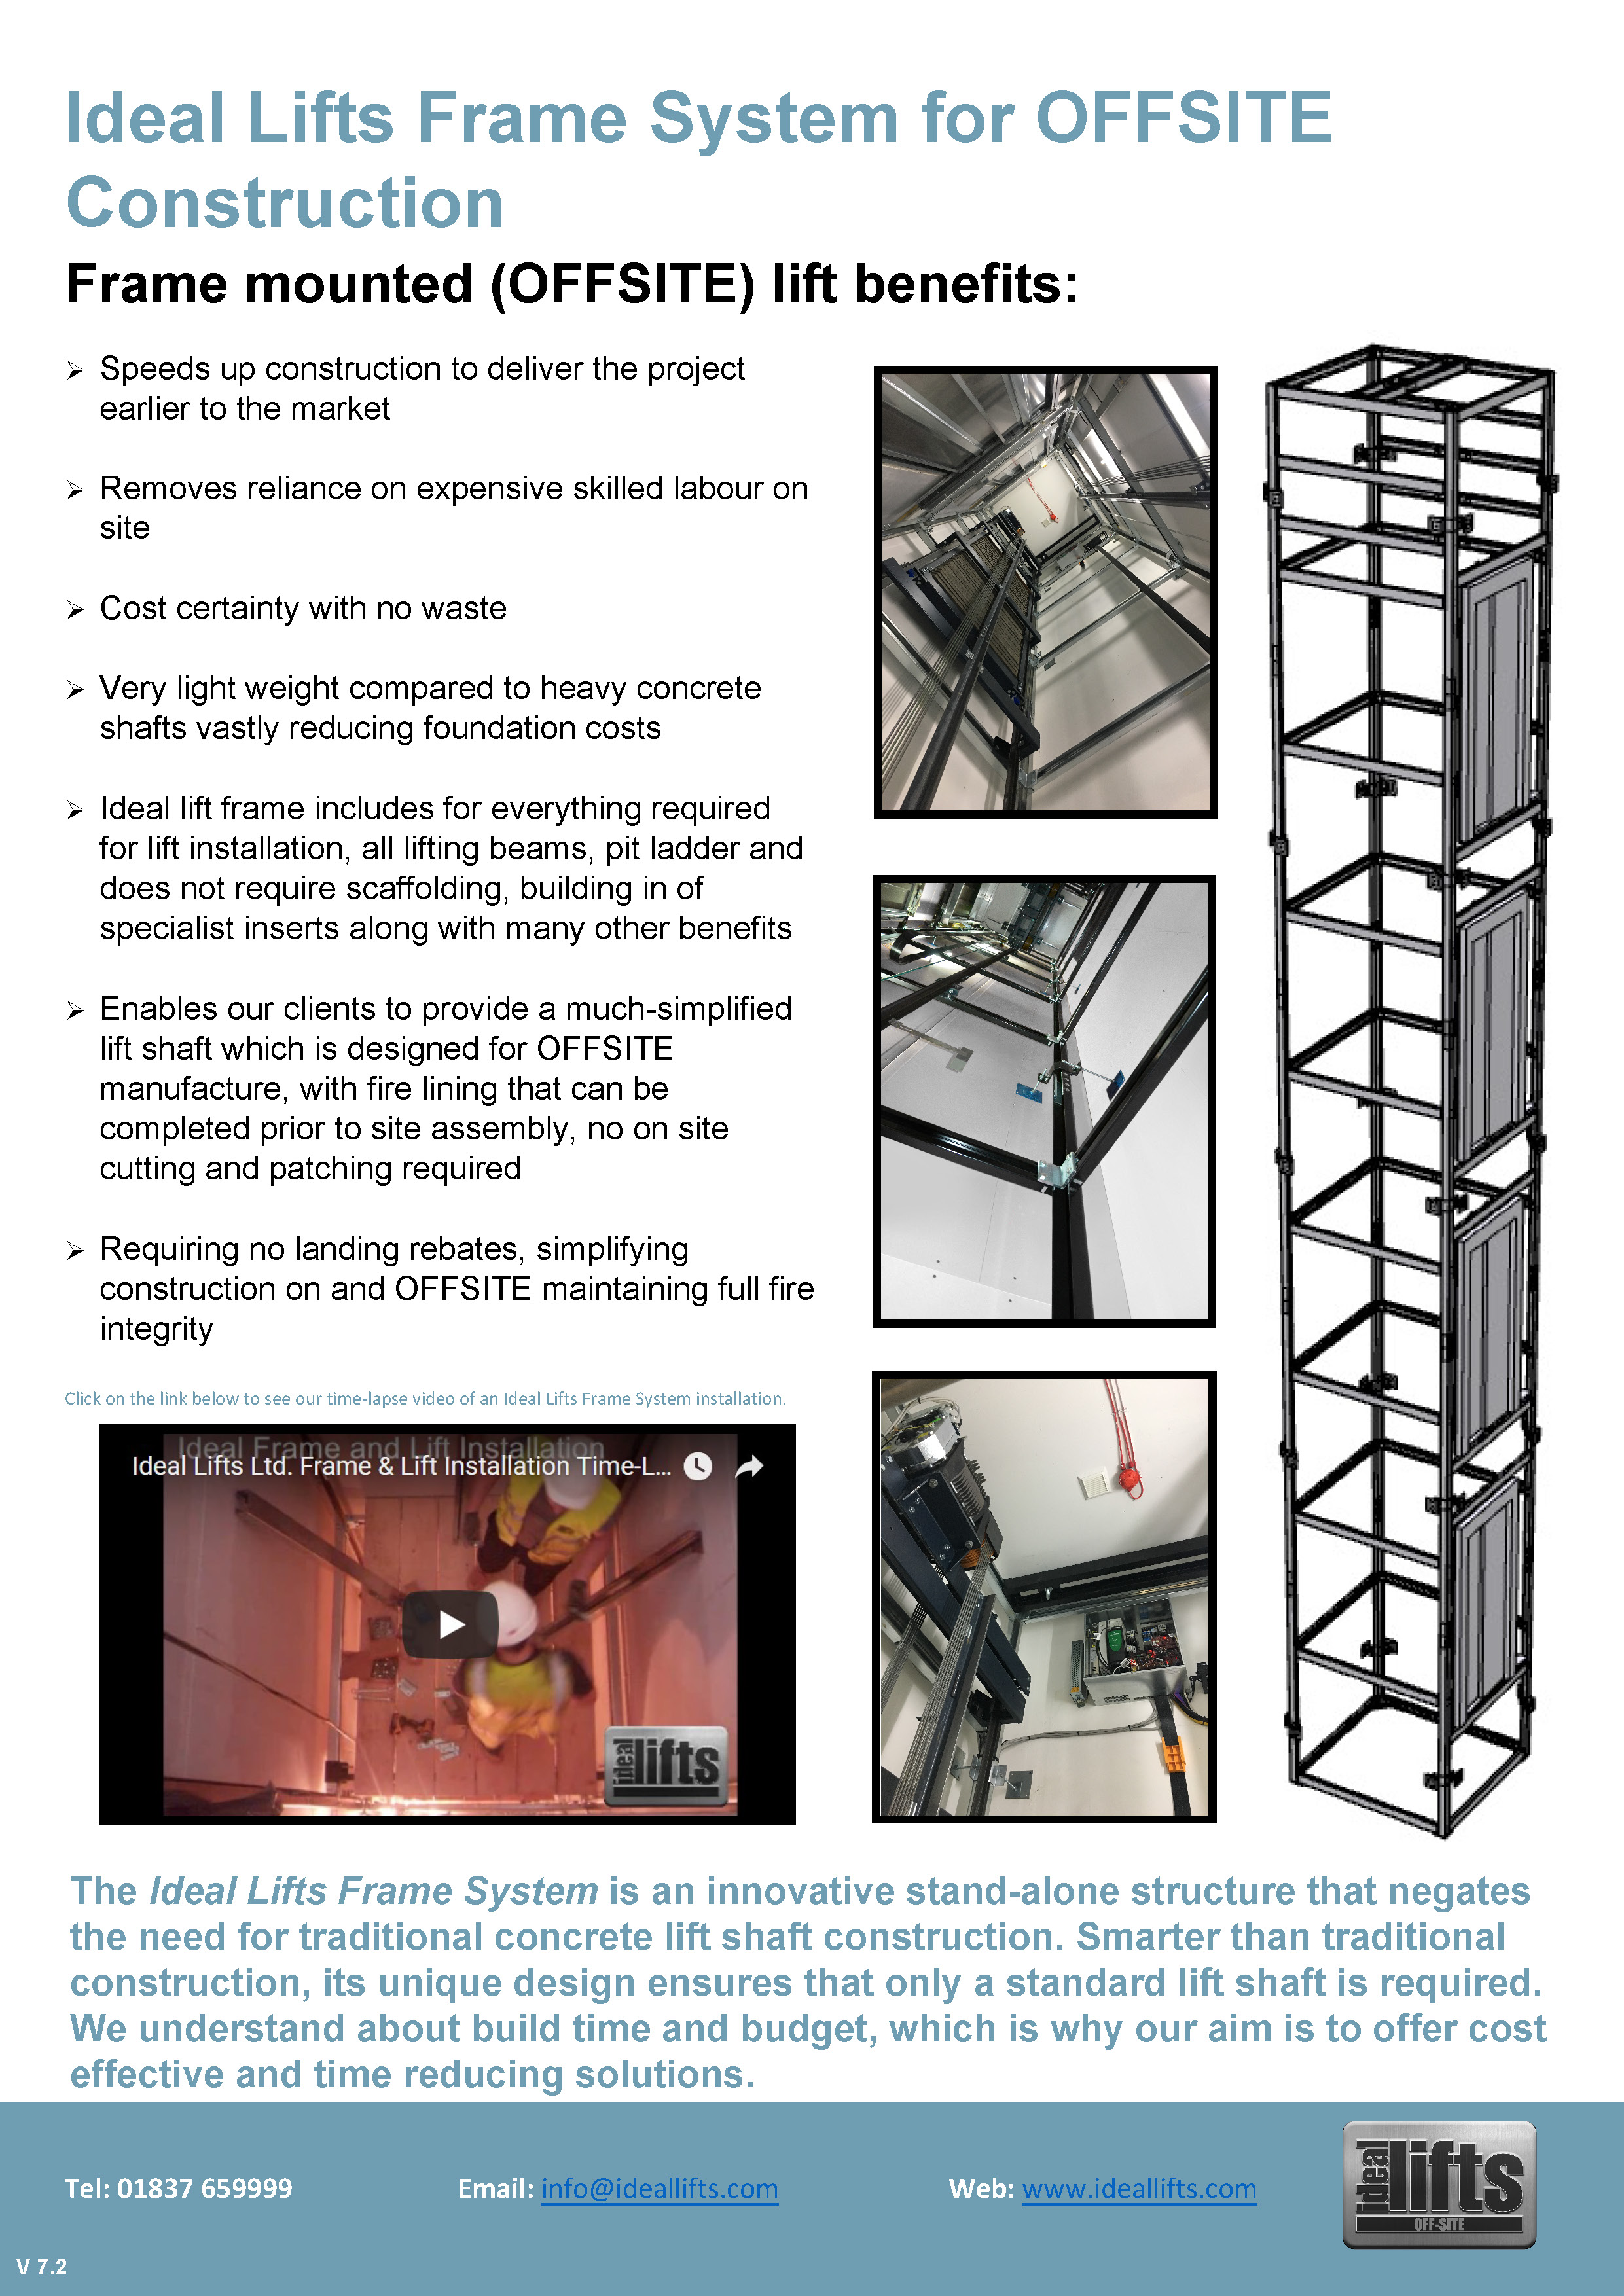 Ideal Lifts Frame System for OFFSITE